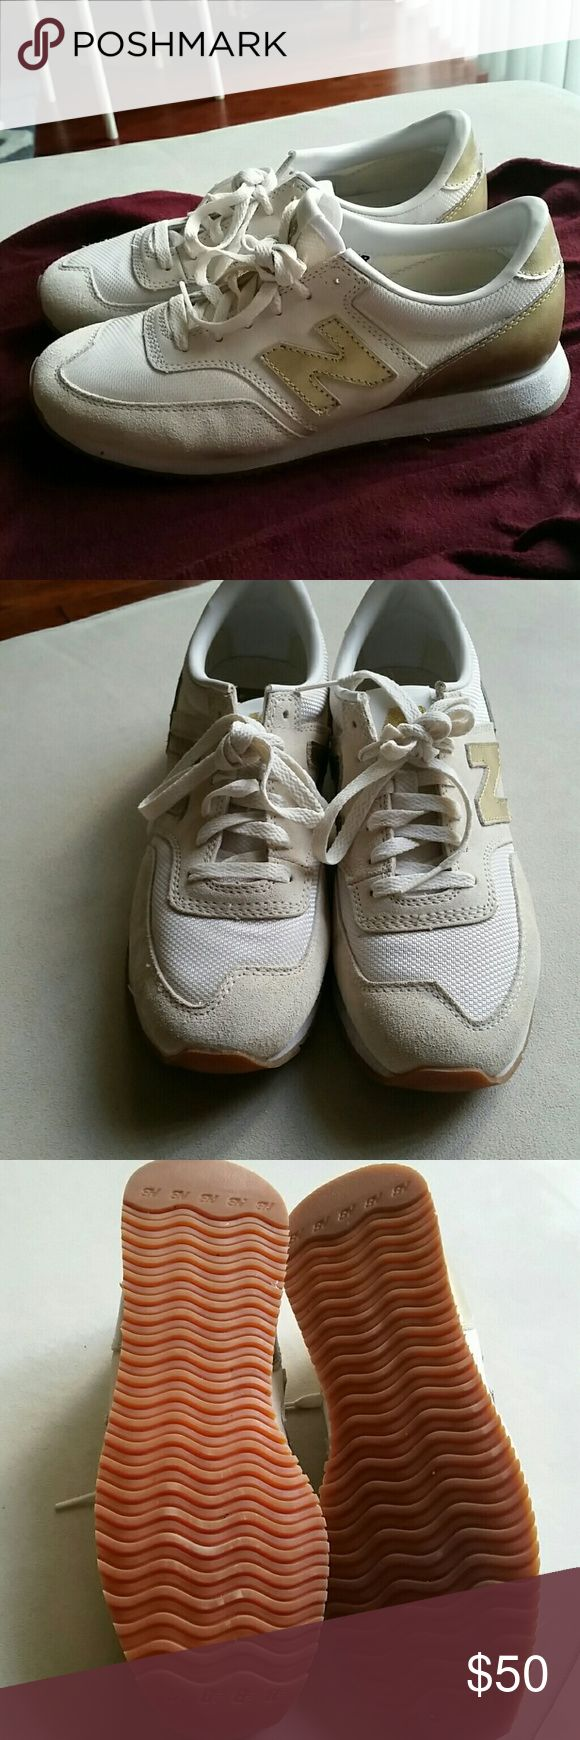 NB shoes NB SHOES New Balance Shoes Sneakers